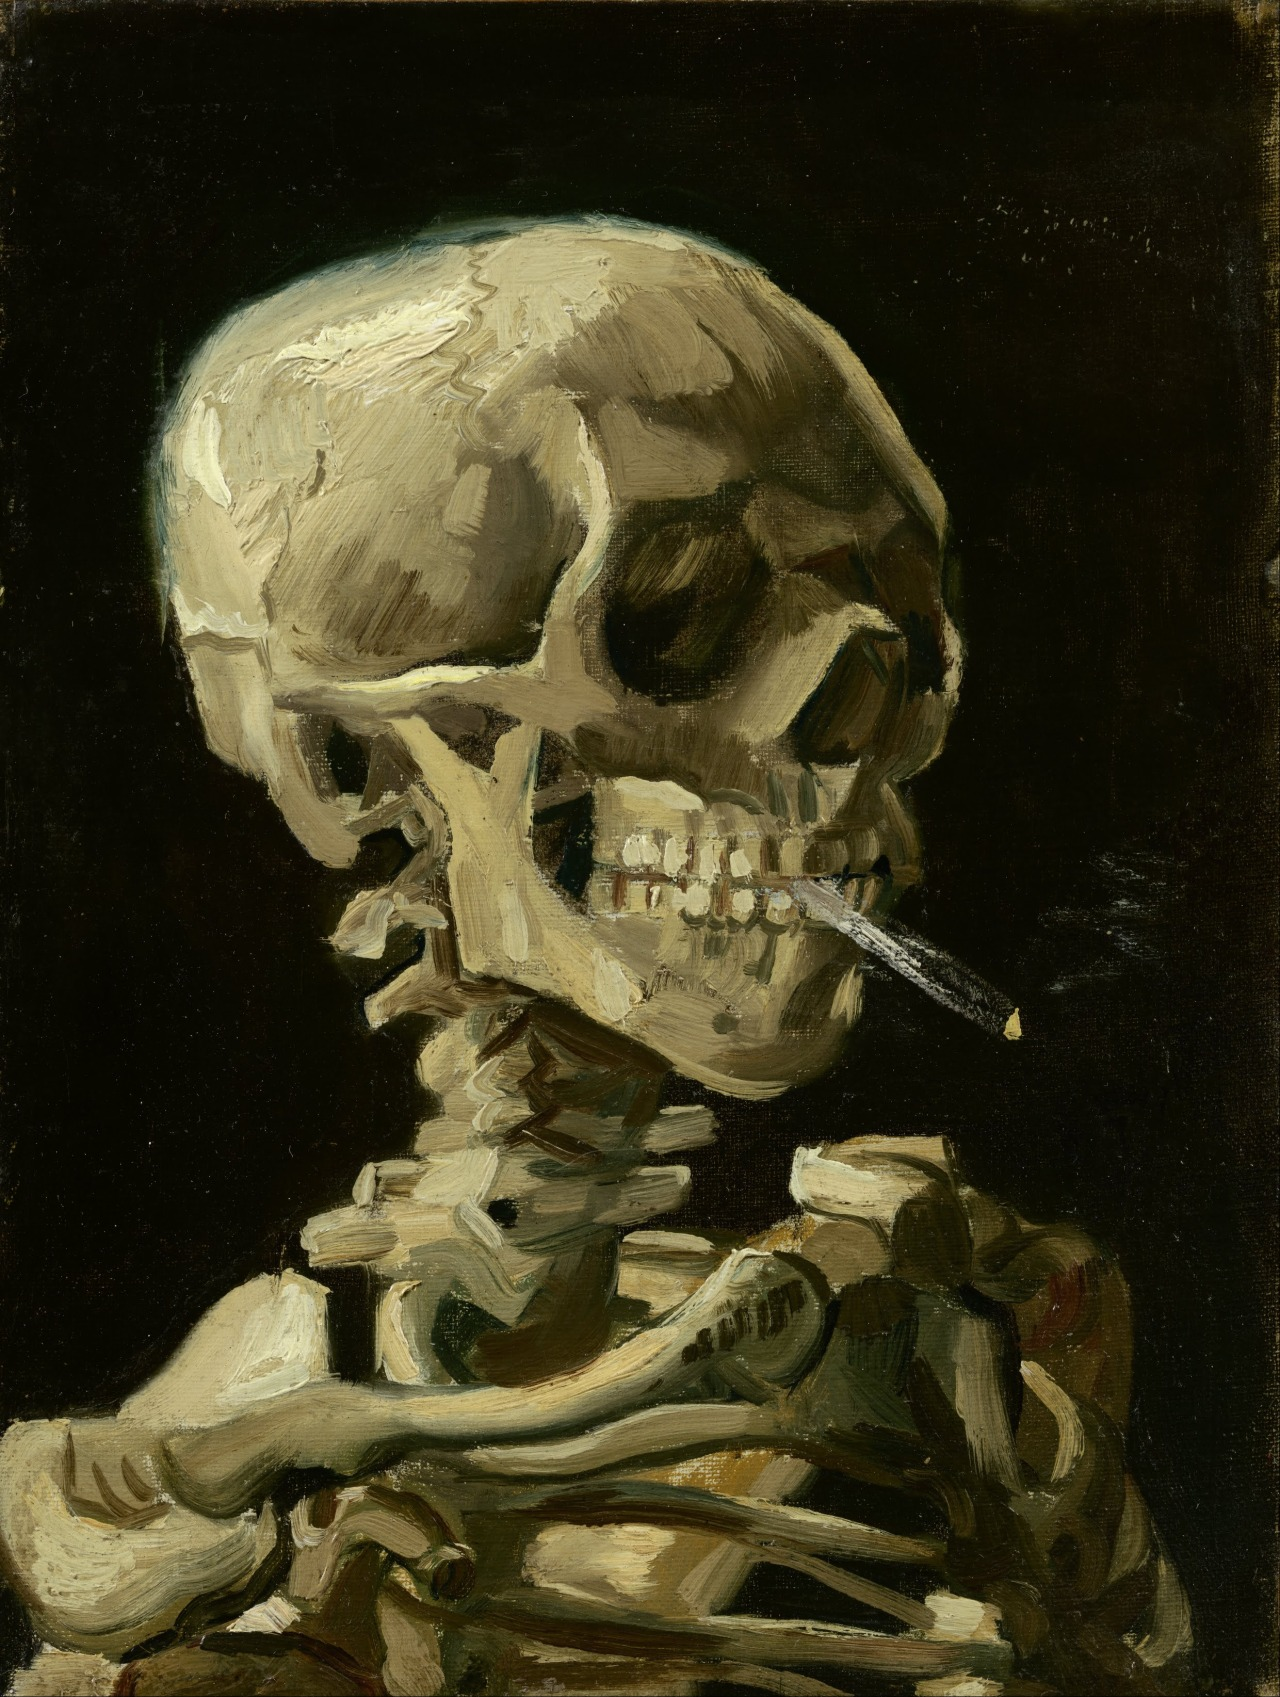 swop-bango: Why the hell do people romanticize Van Gogh's mental health issues when they could be romanticizing this, a sick ass painting he did of a skeleton smoking a cigarette, instead